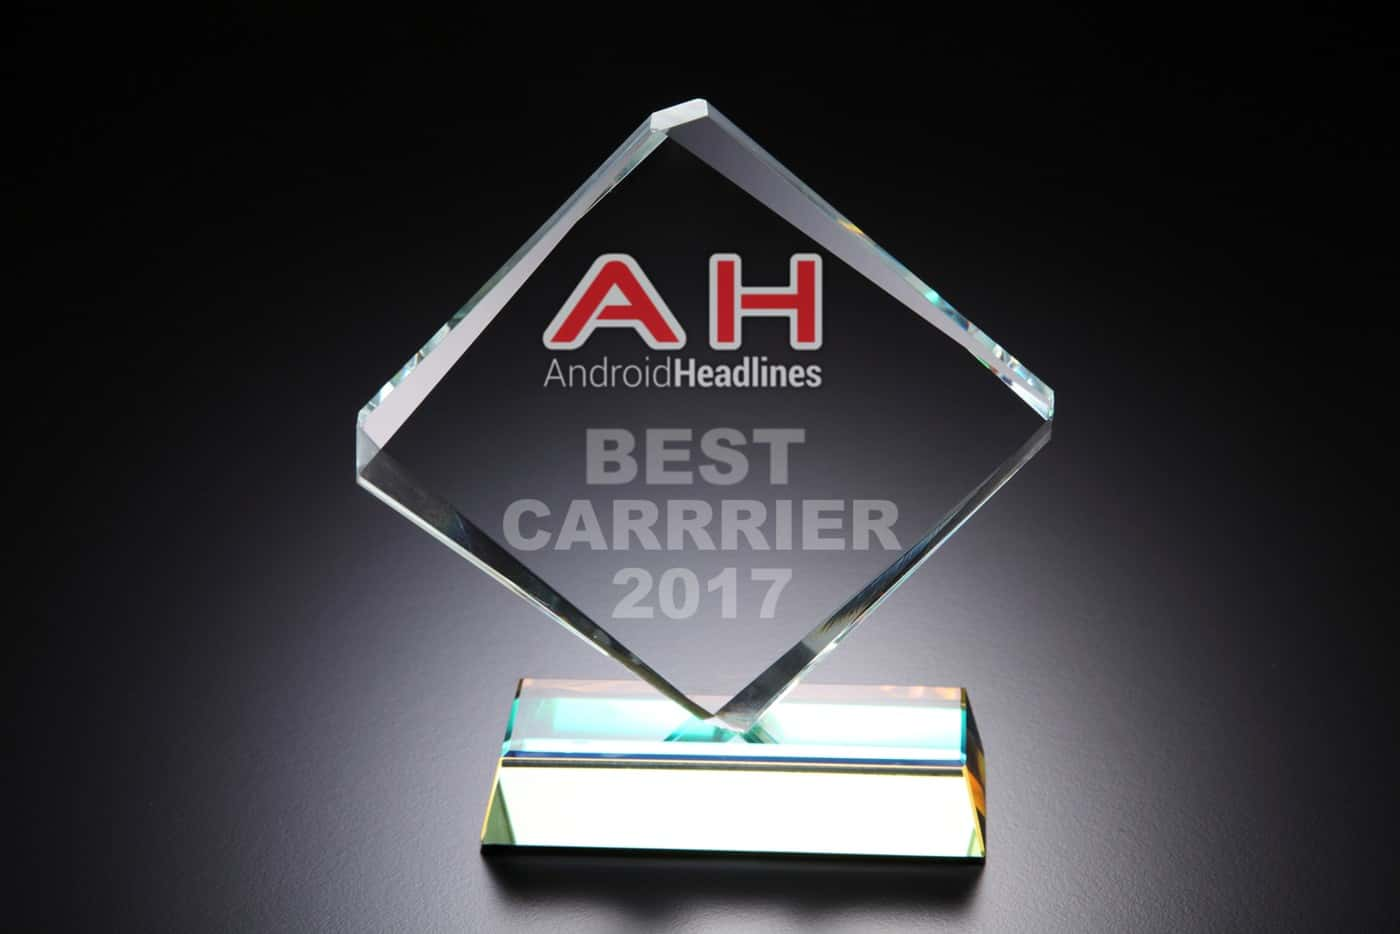 Best Cellphone Carrier 2017 AndroidHeadlines